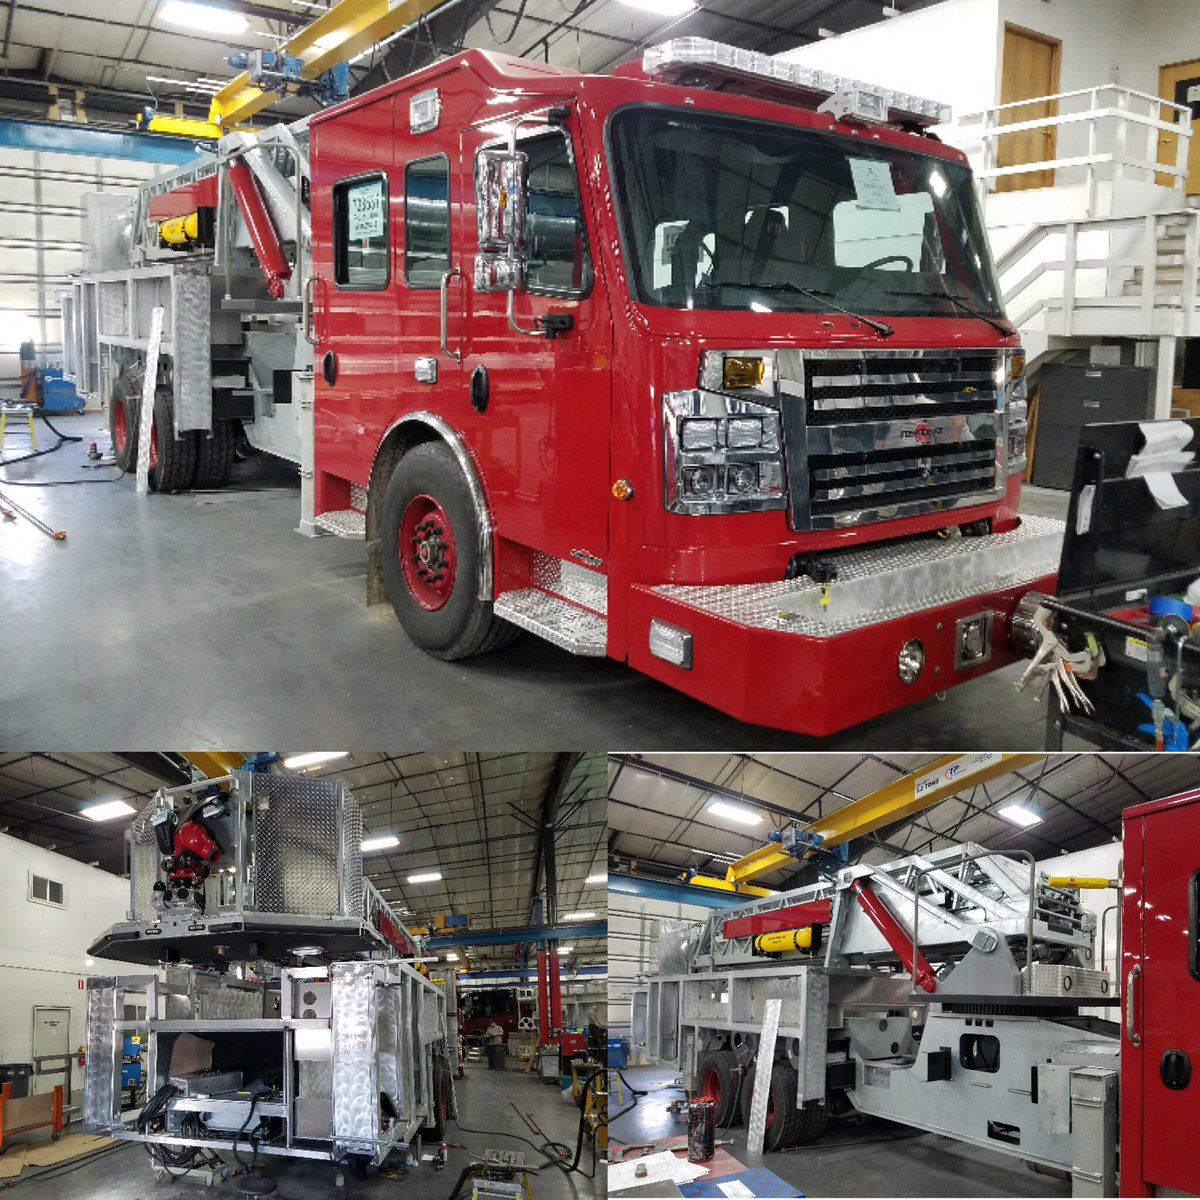 """Springfield Fire on Twitter: """"Construction continues on a new @SGF_Fire ladder truck to serve the @CityofSgf. The new truck is expected to be delivered near ..."""